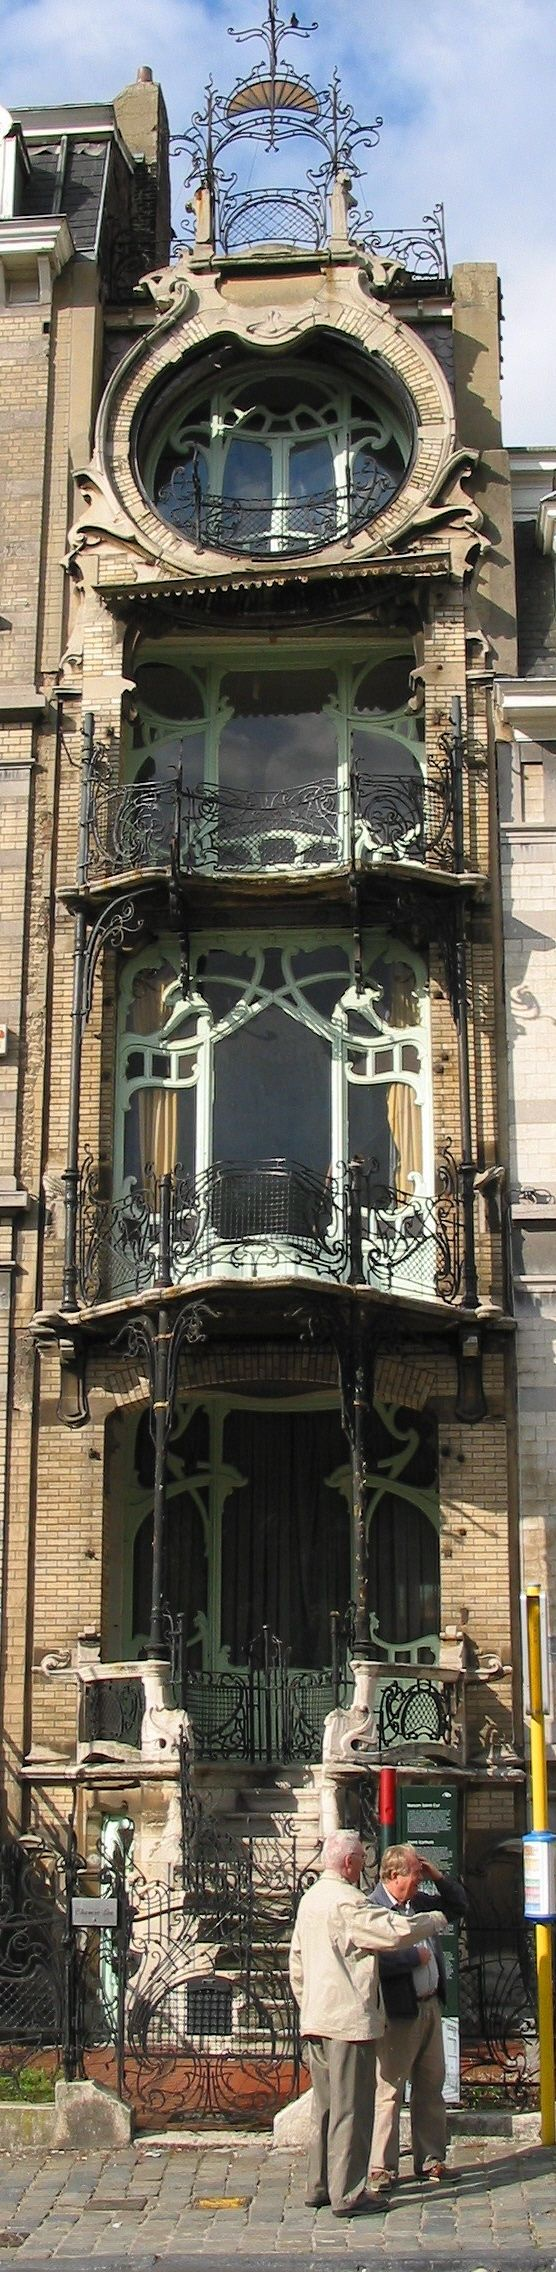 The St. Cyr house,Brussels, Belgium(1903 , Architect: Gustave Strauven). This…